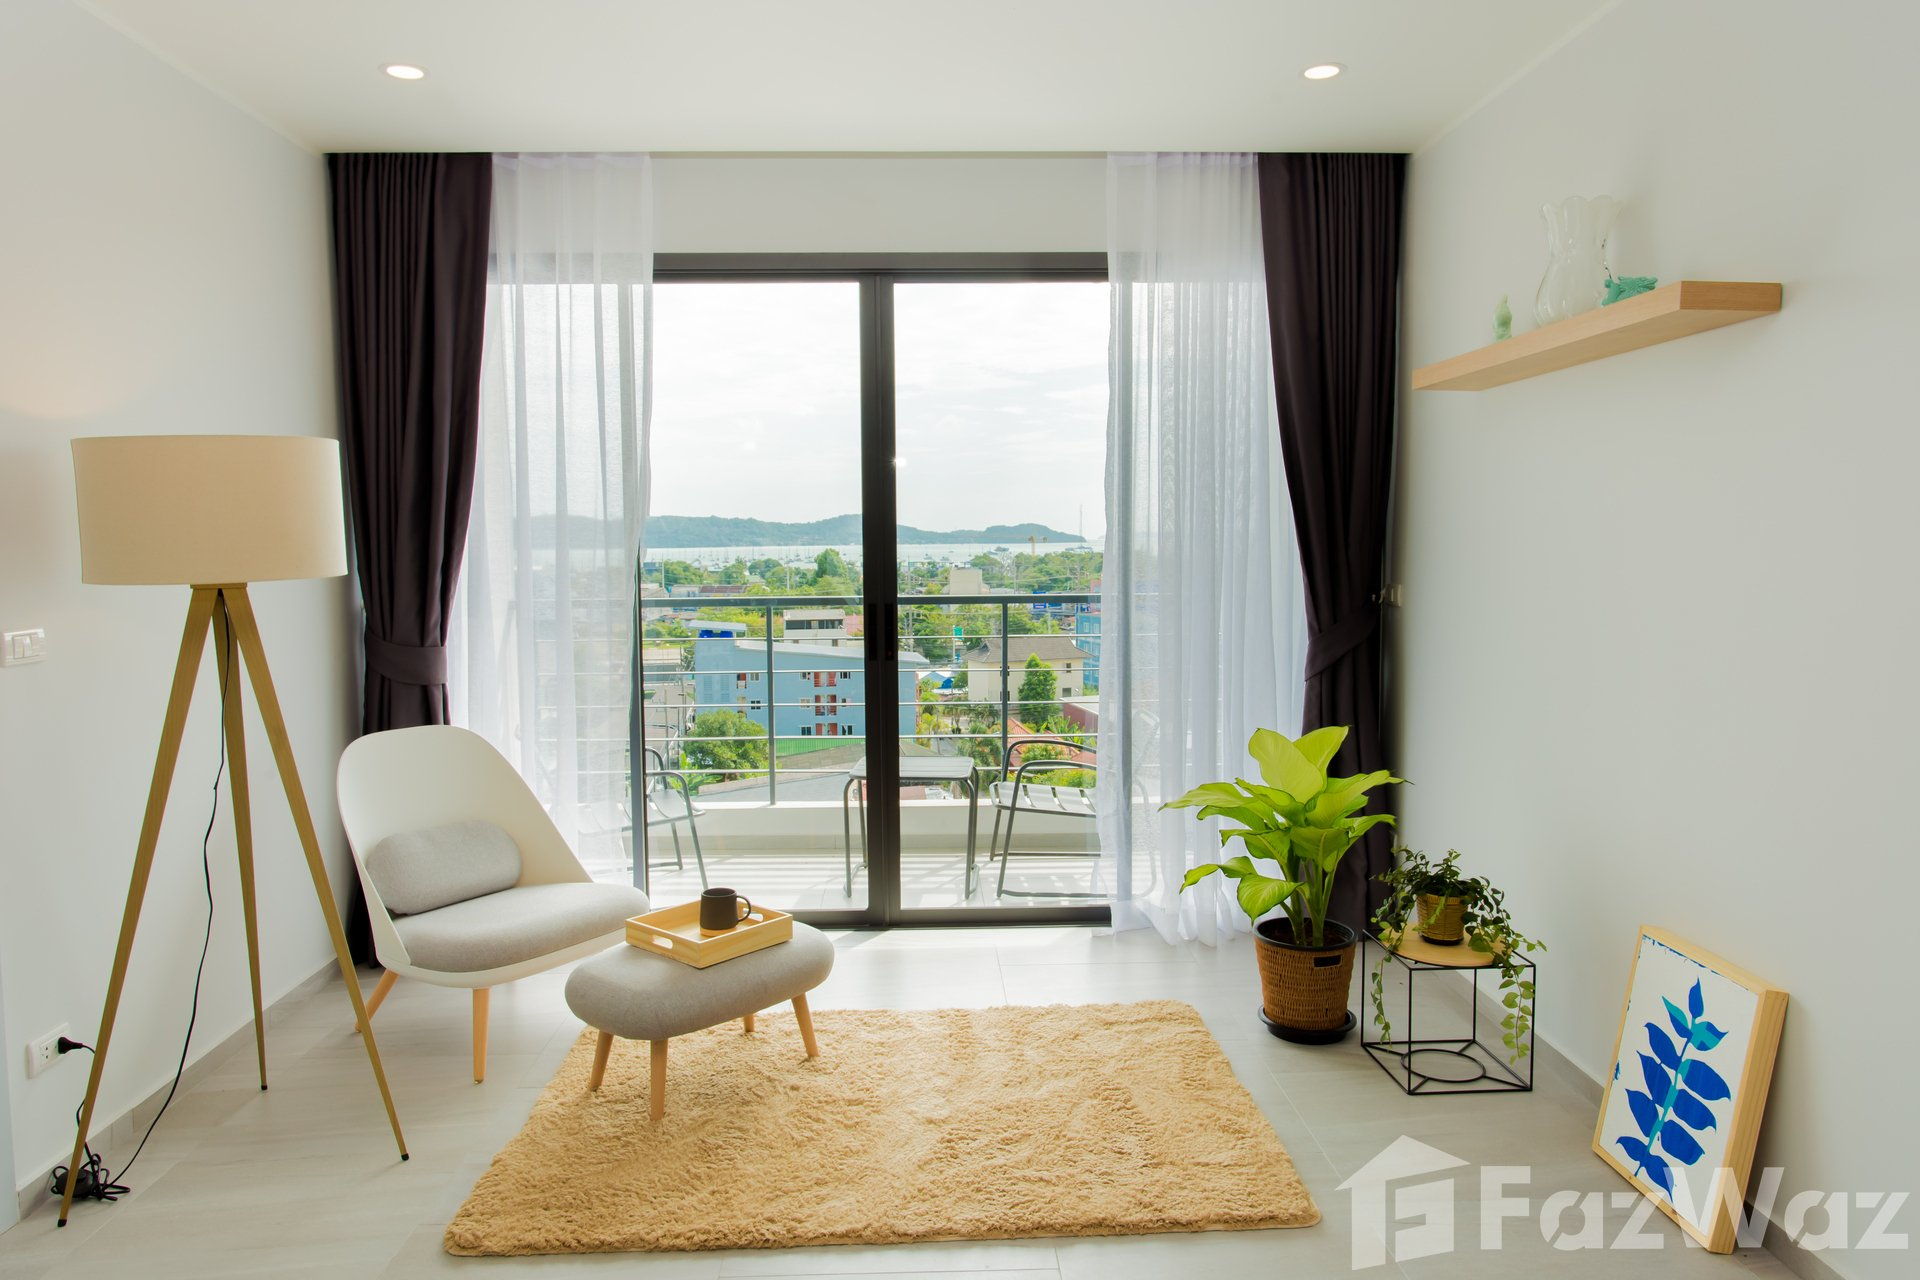 For SaleCondoPhuket, Patong : 3 Bedroom Condo for sale at NOON Village Tower II  U665702